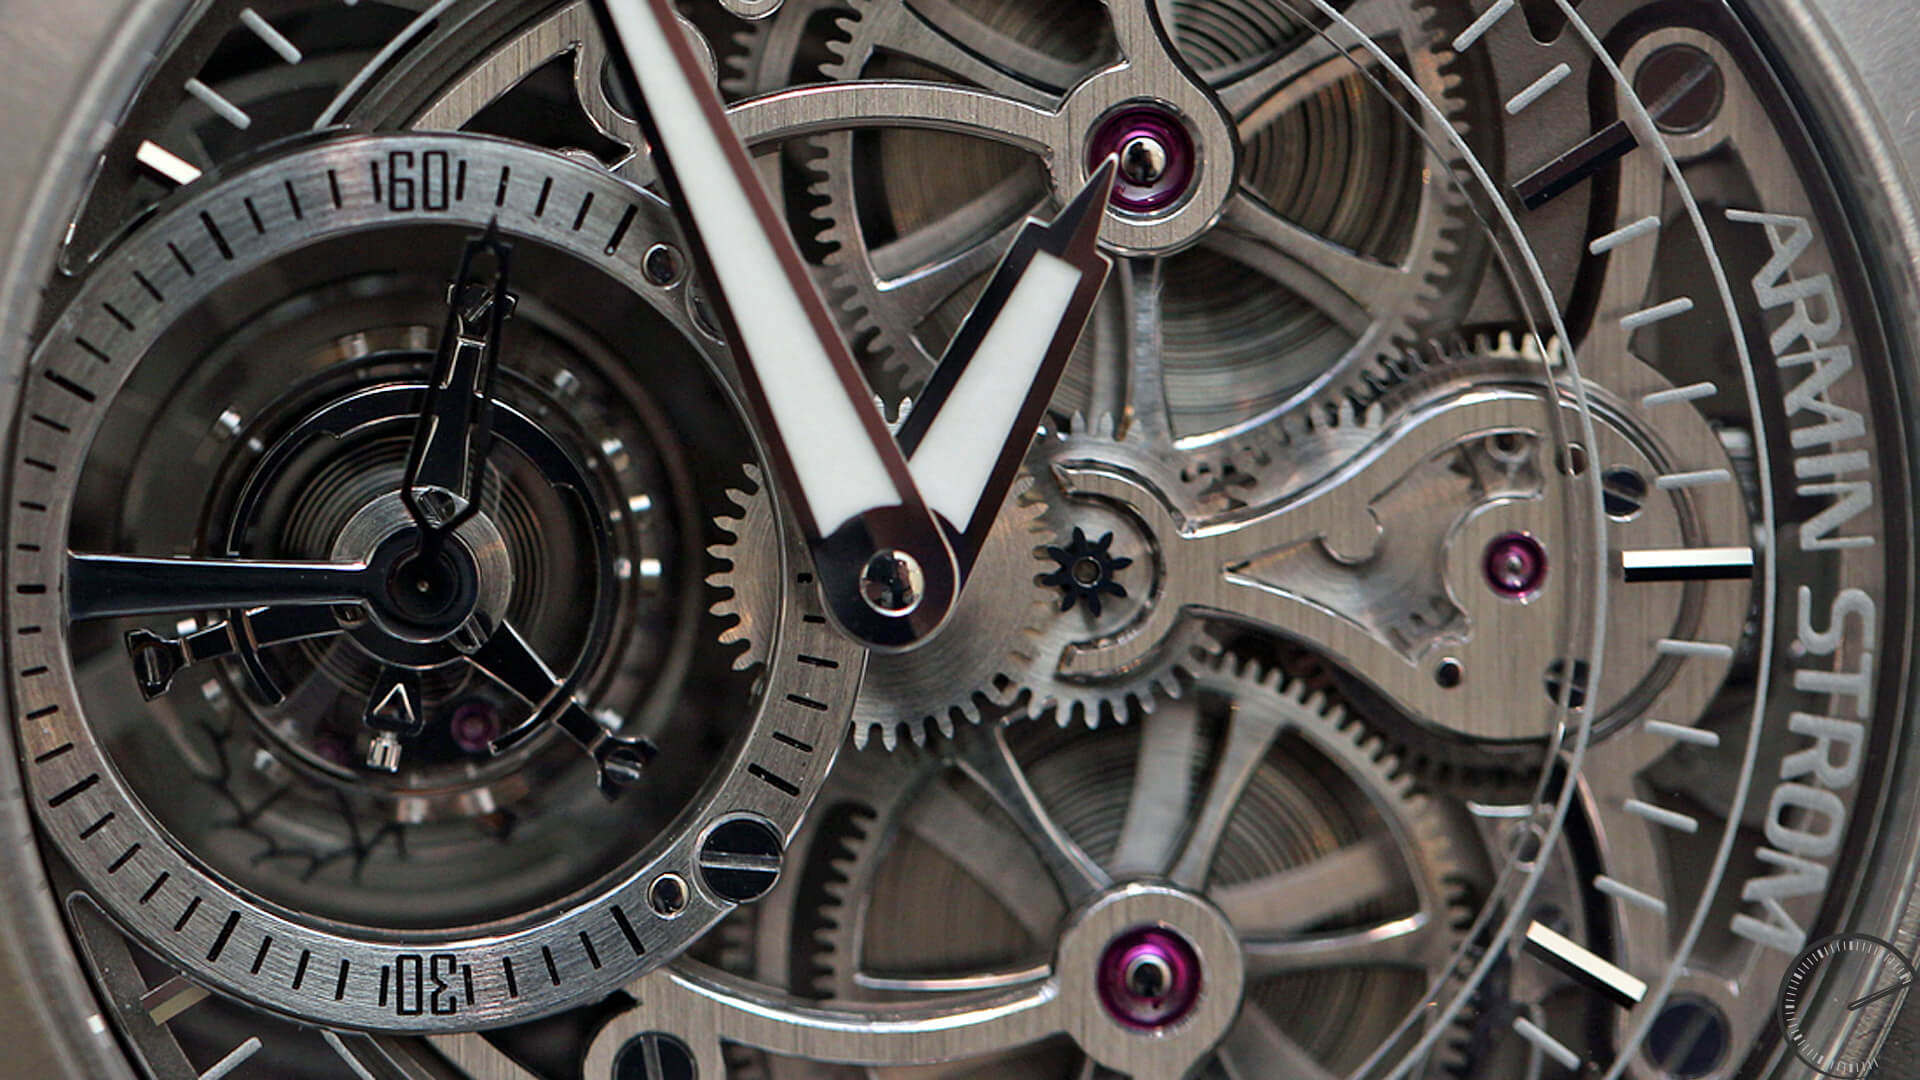 Armin_Strom_Tourbillon_Skeleton_Air_dial2 - - ESCAPEMENT magazine - watch reviews for purists by Angus Davies